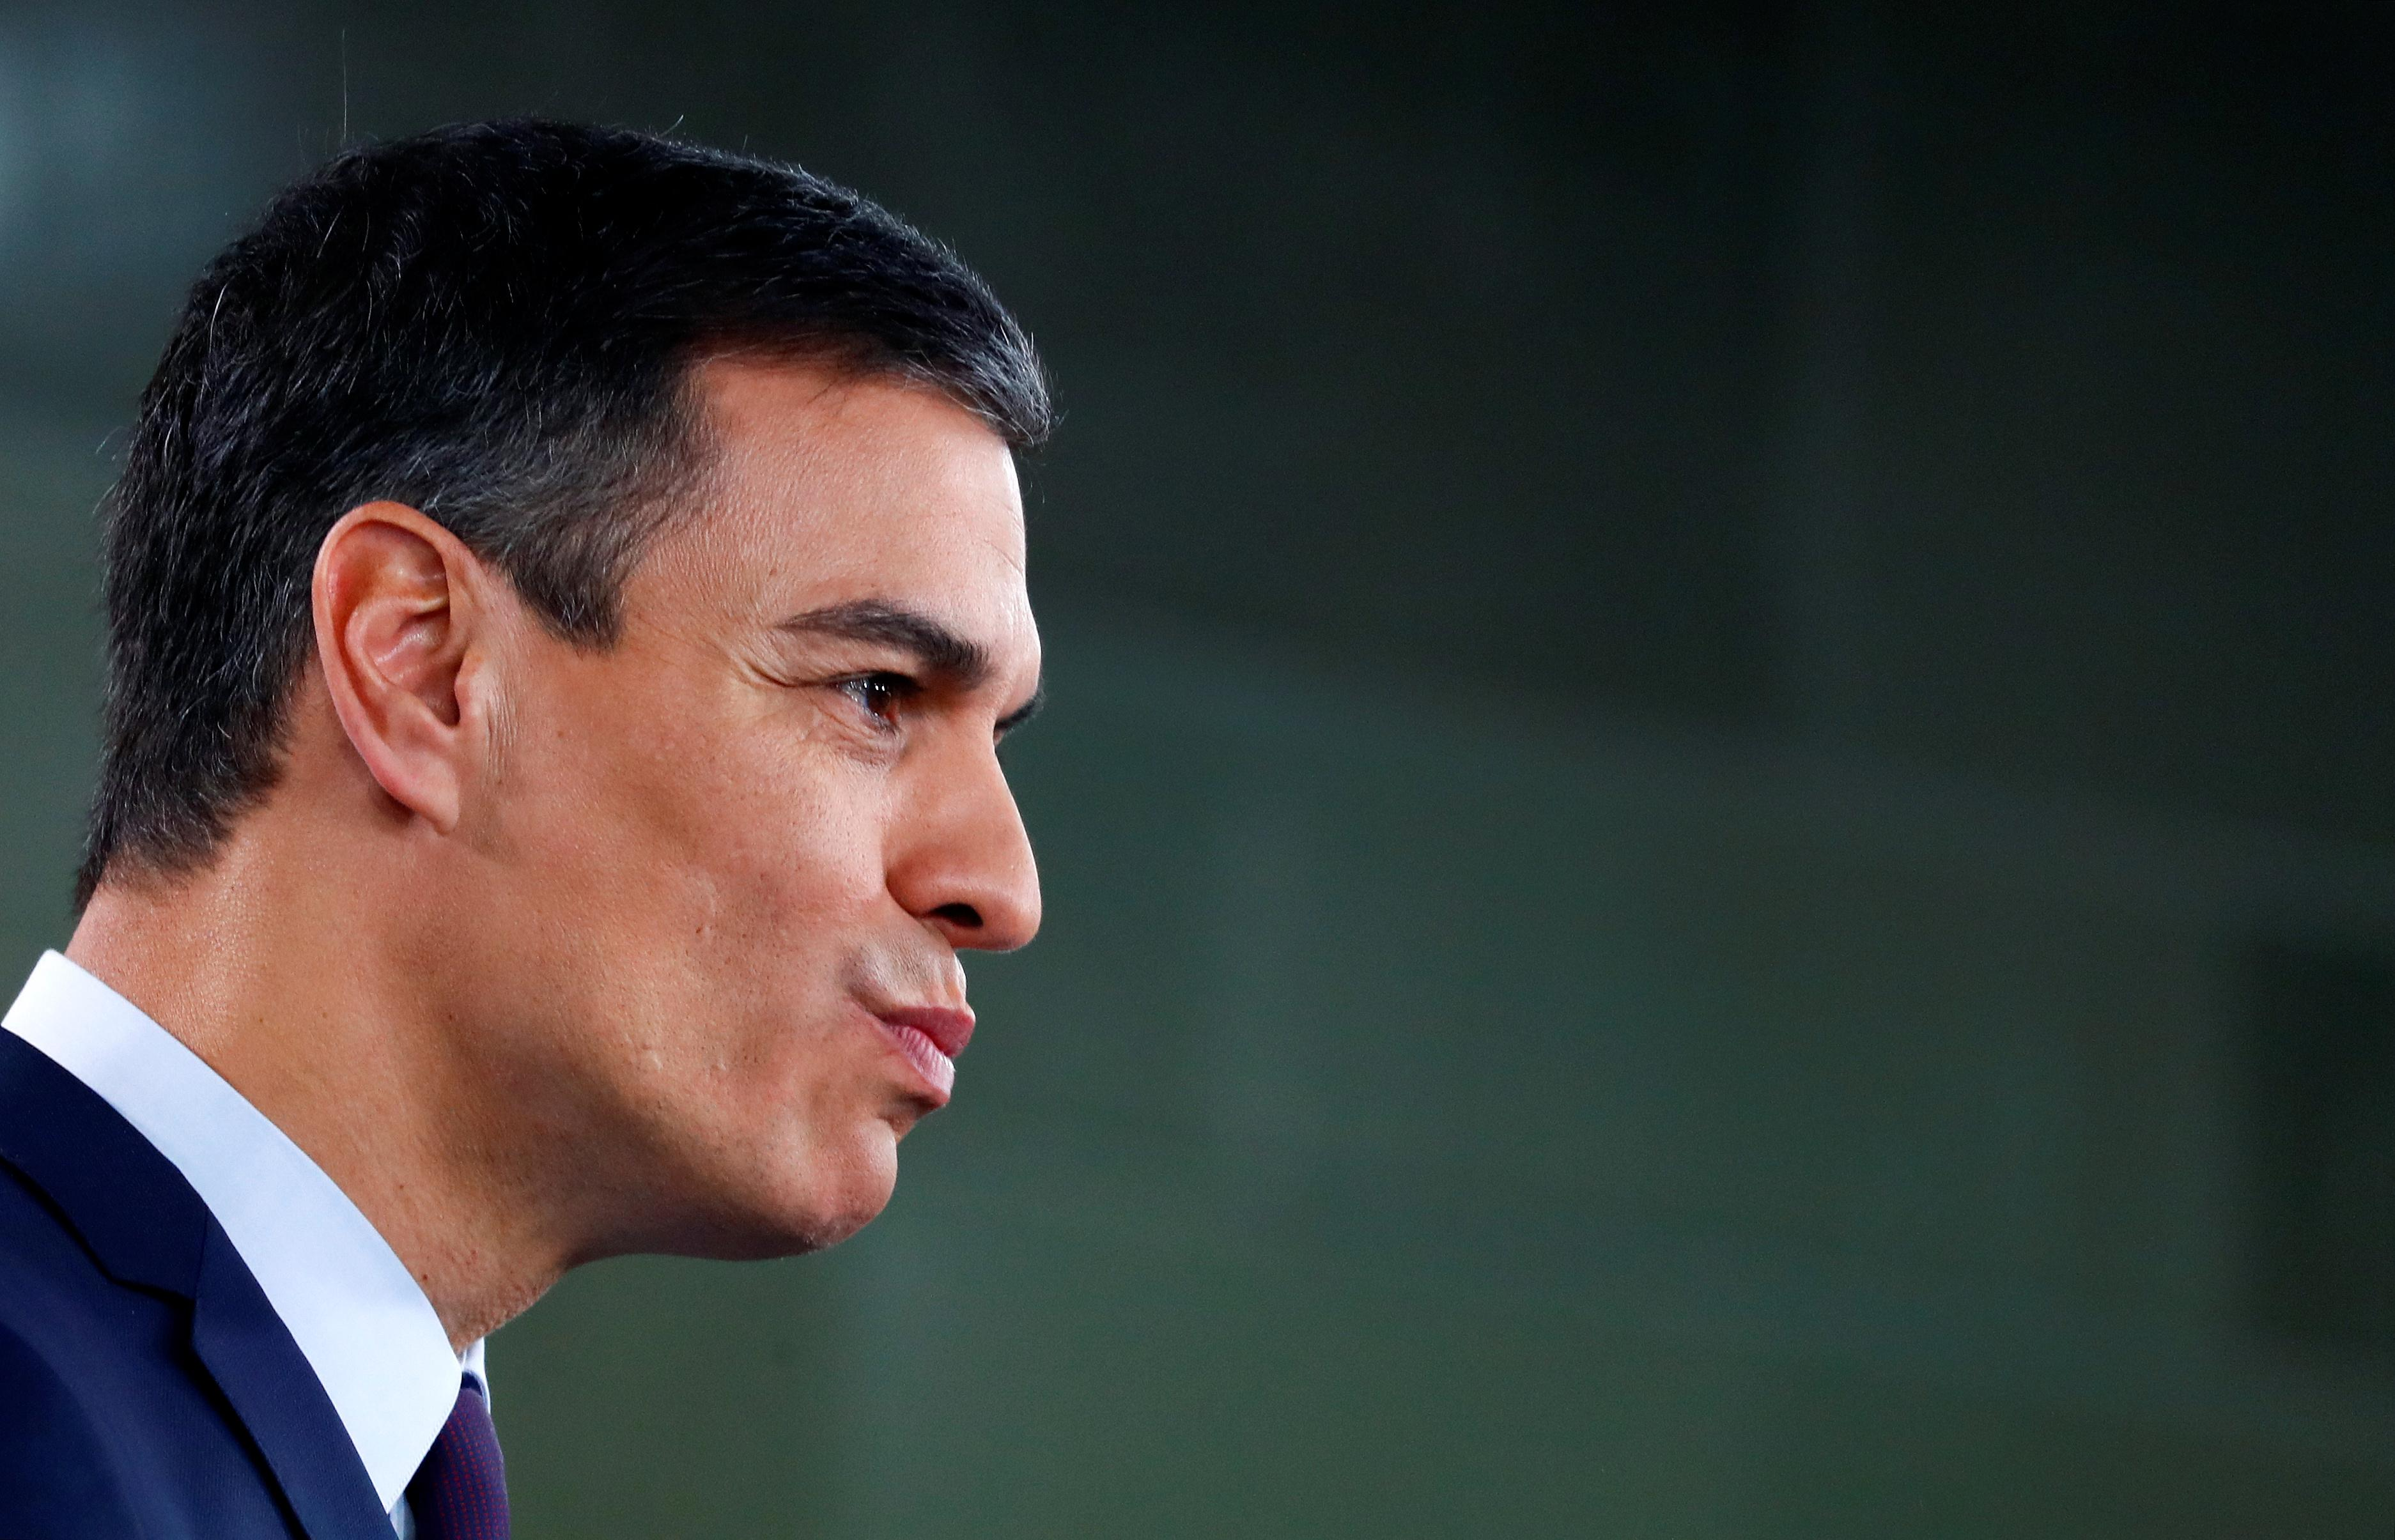 Spain's April election heralds political jockeying